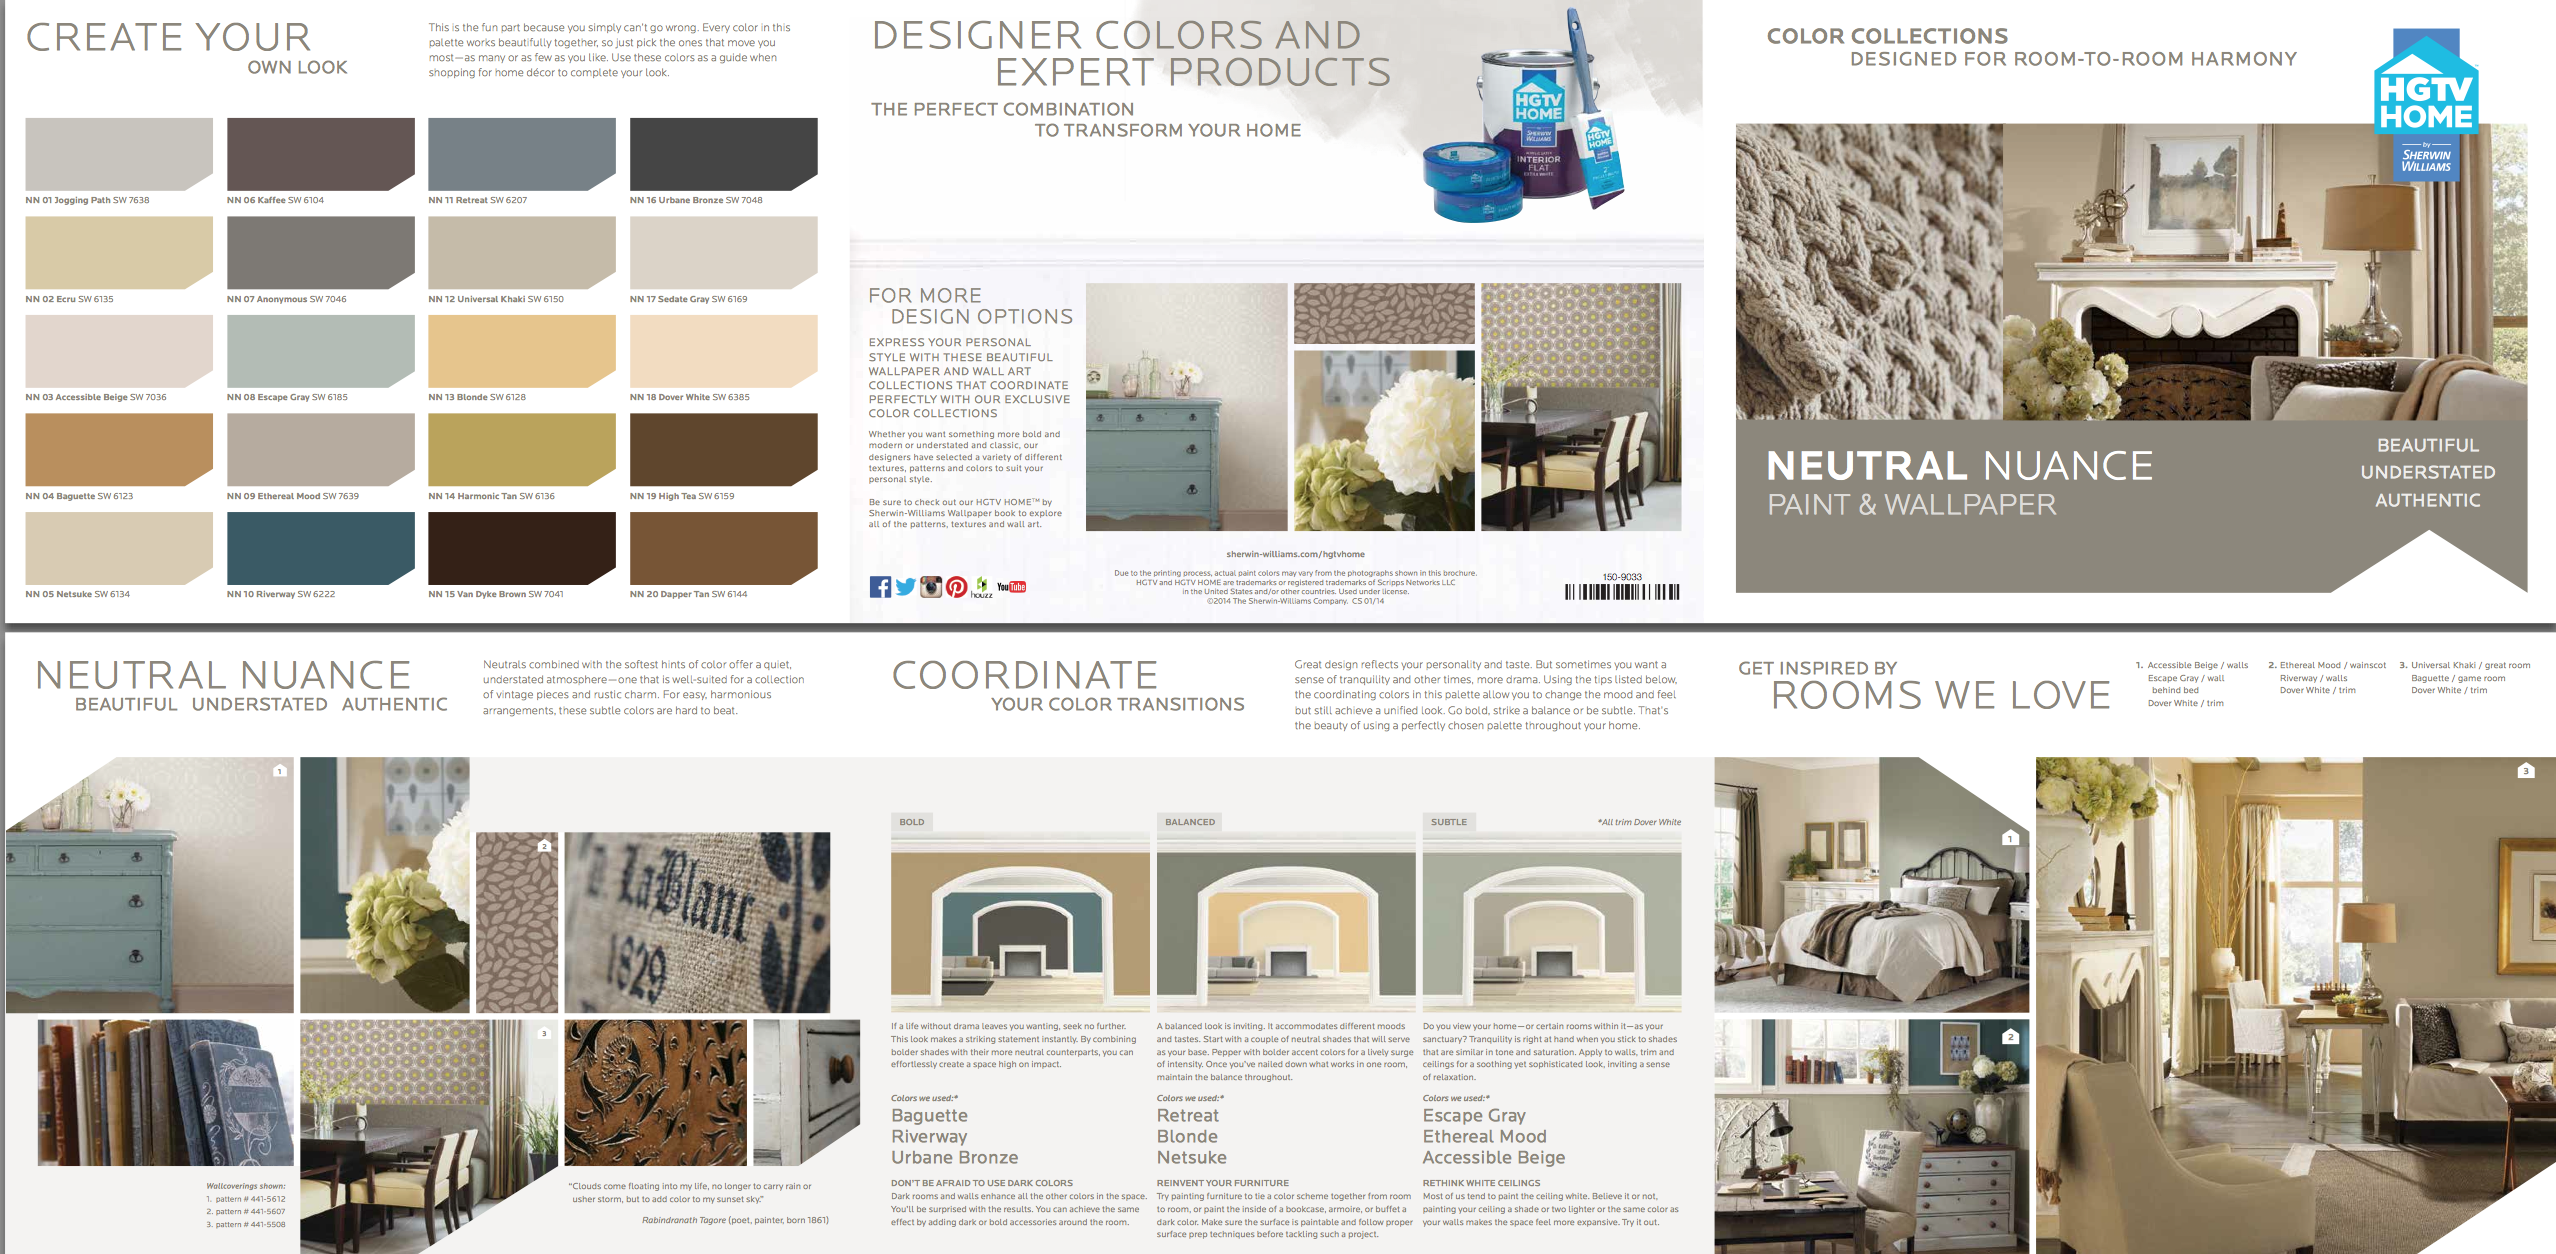 Sherwin Williams/HGTV Home Neutral Nuance Color Palette Style Guide ...